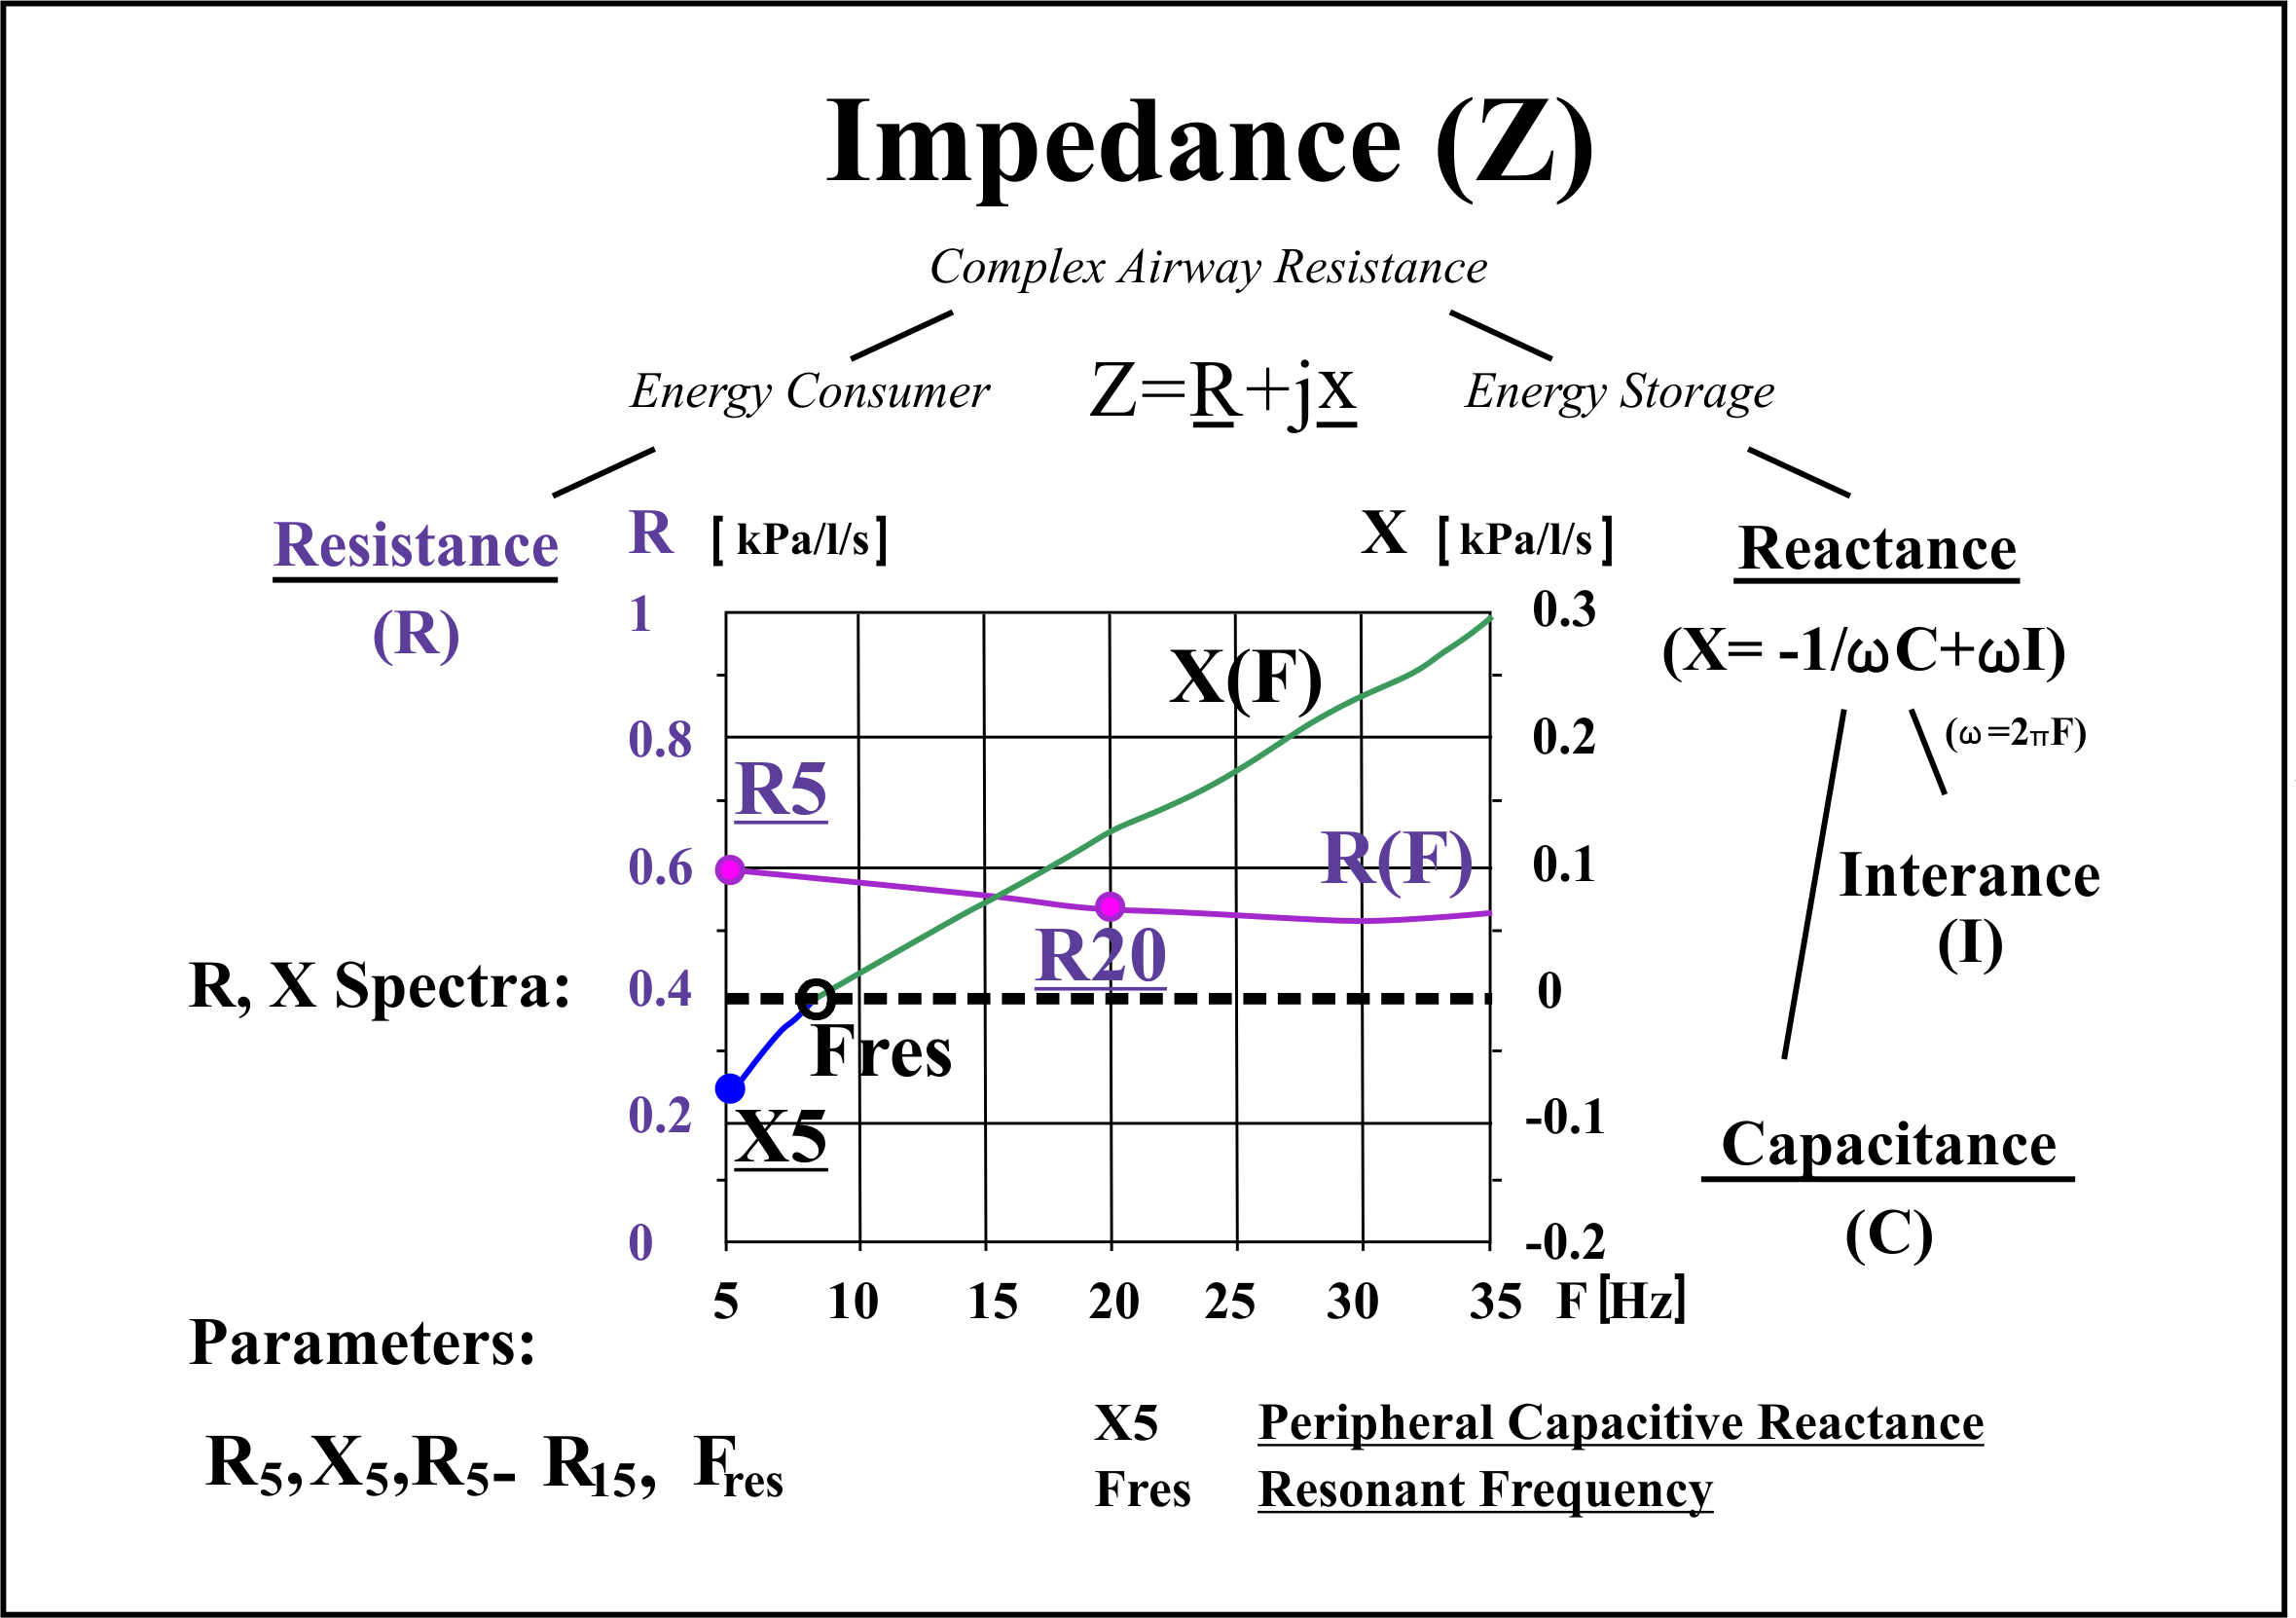 Impulse Oscillometric Features And Respiratory System Models Track Electriccircuit Reactance Impedance Capacitive Figure 1